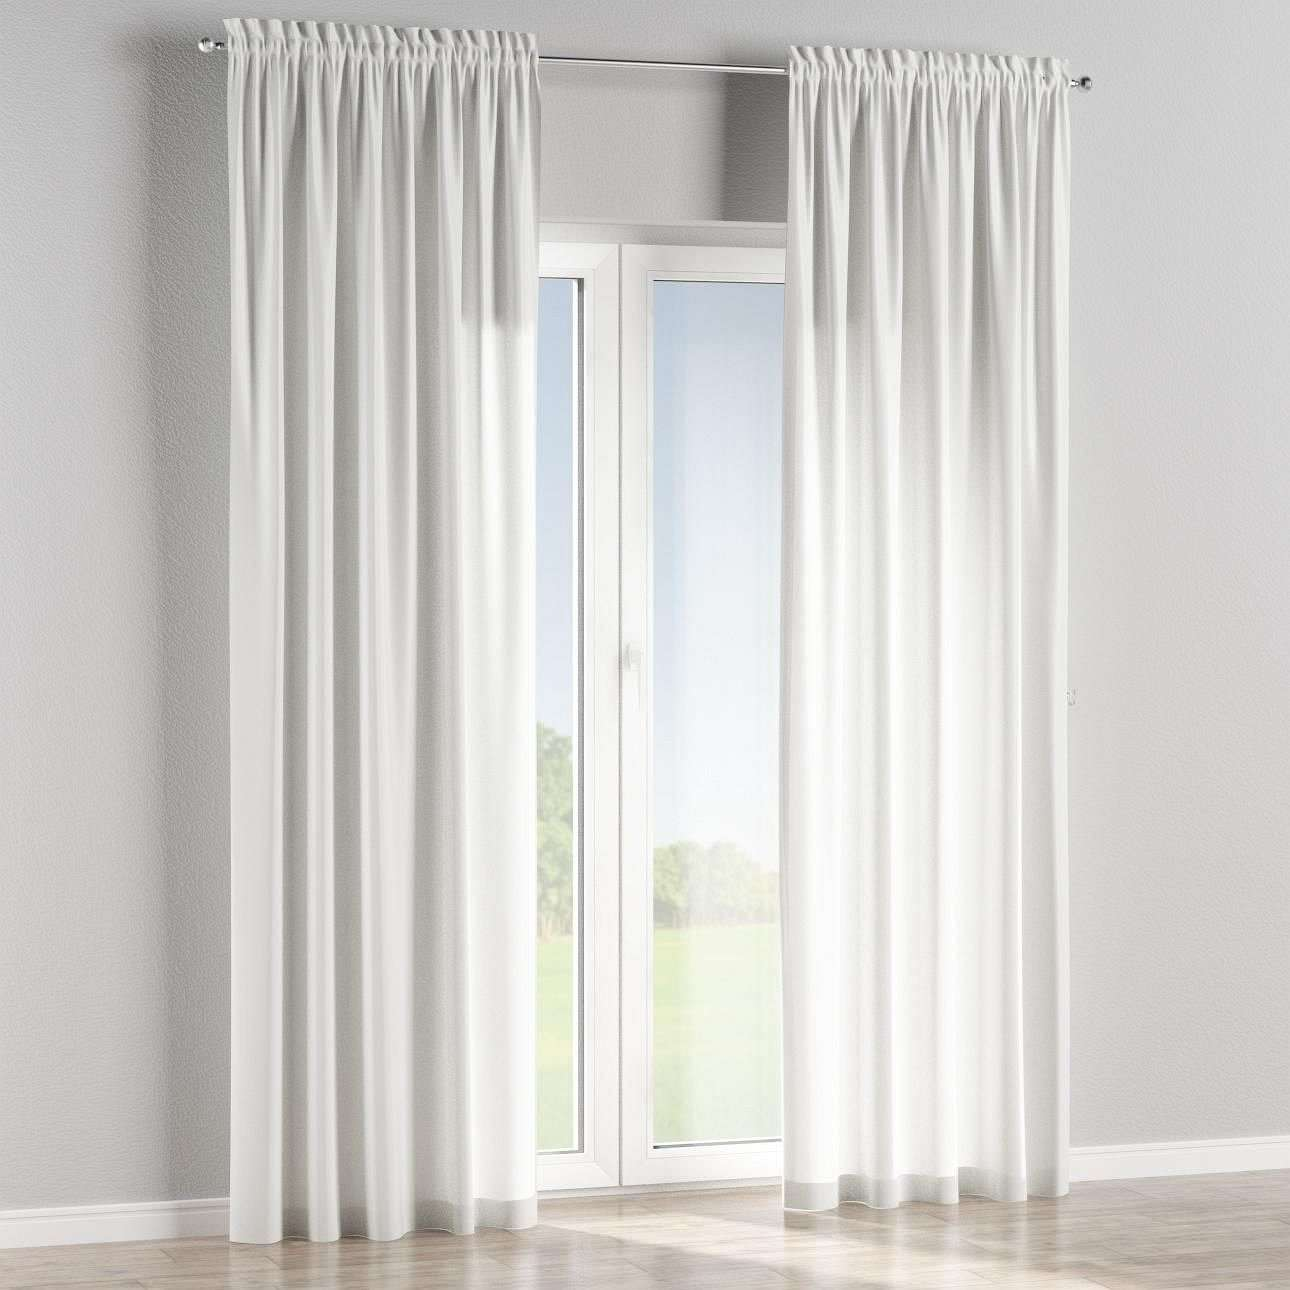 Slot and frill curtains in collection Londres, fabric: 122-03